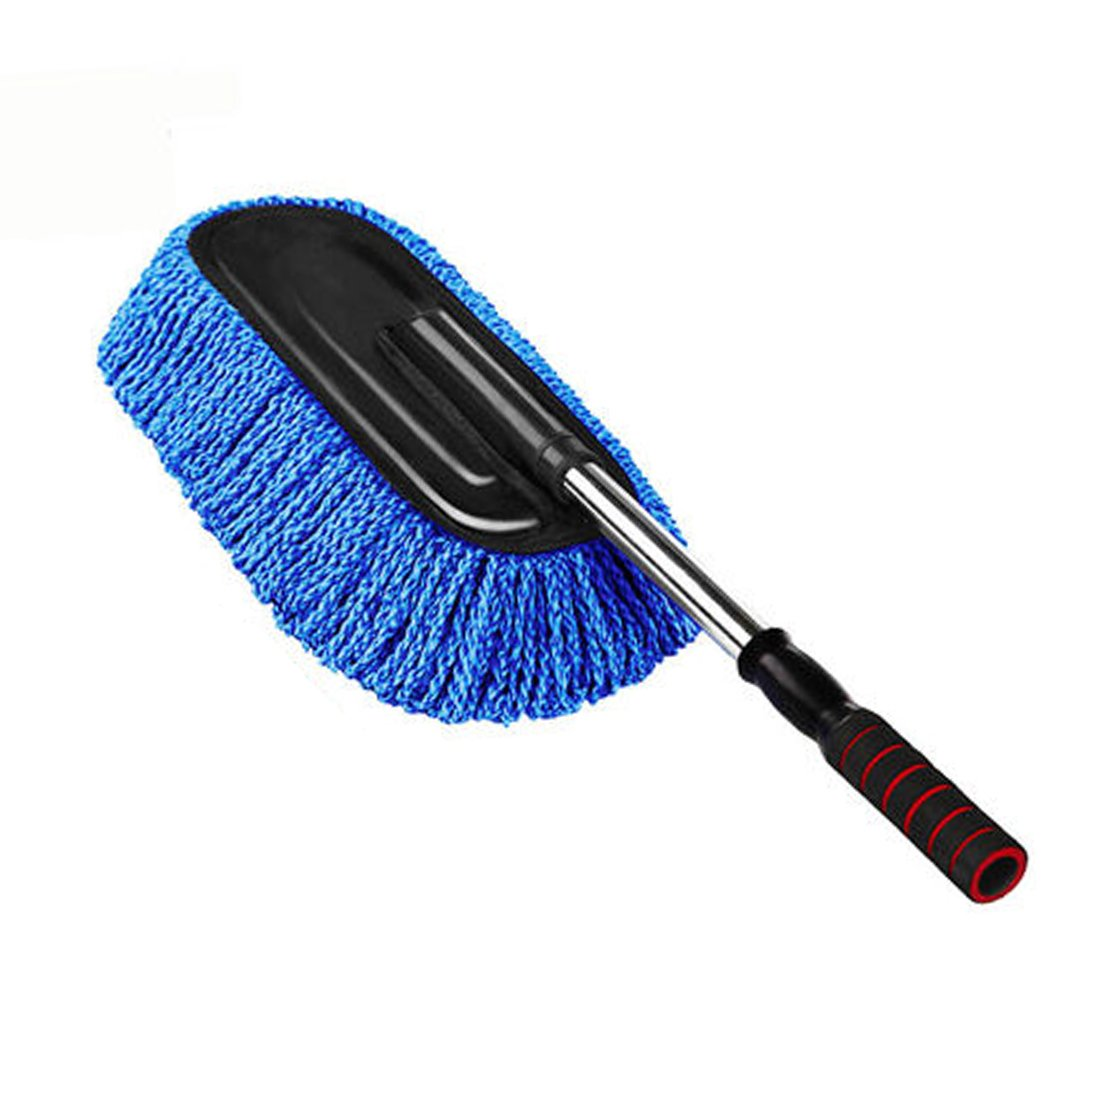 Car Duster, PeleusTech Microfiber Telescoping Wax Mop Car Dust Duster Vehicle Home Wash Cleaning Tool - Blue